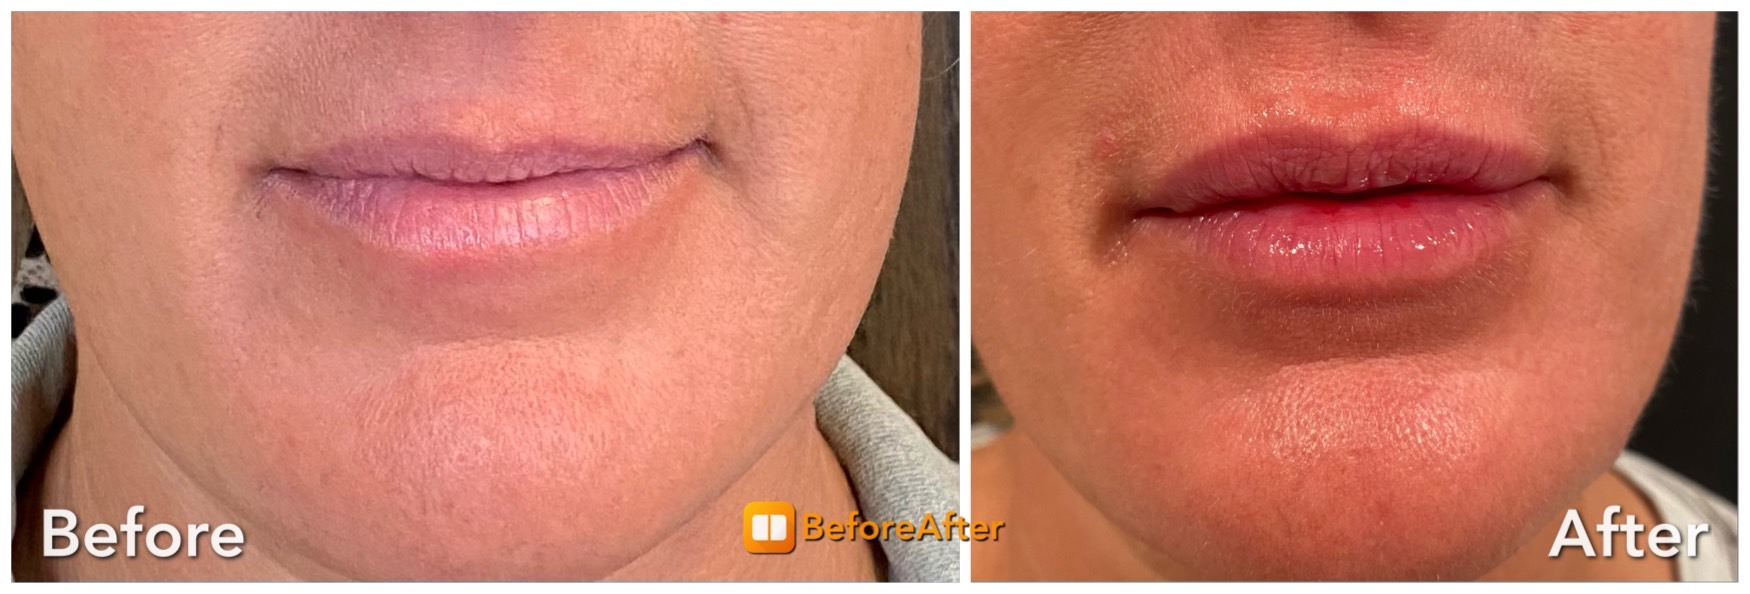 PDO Smooth Threads to Vermillion Border and 1 Syringe Restylane. Before and 2 Weeks After